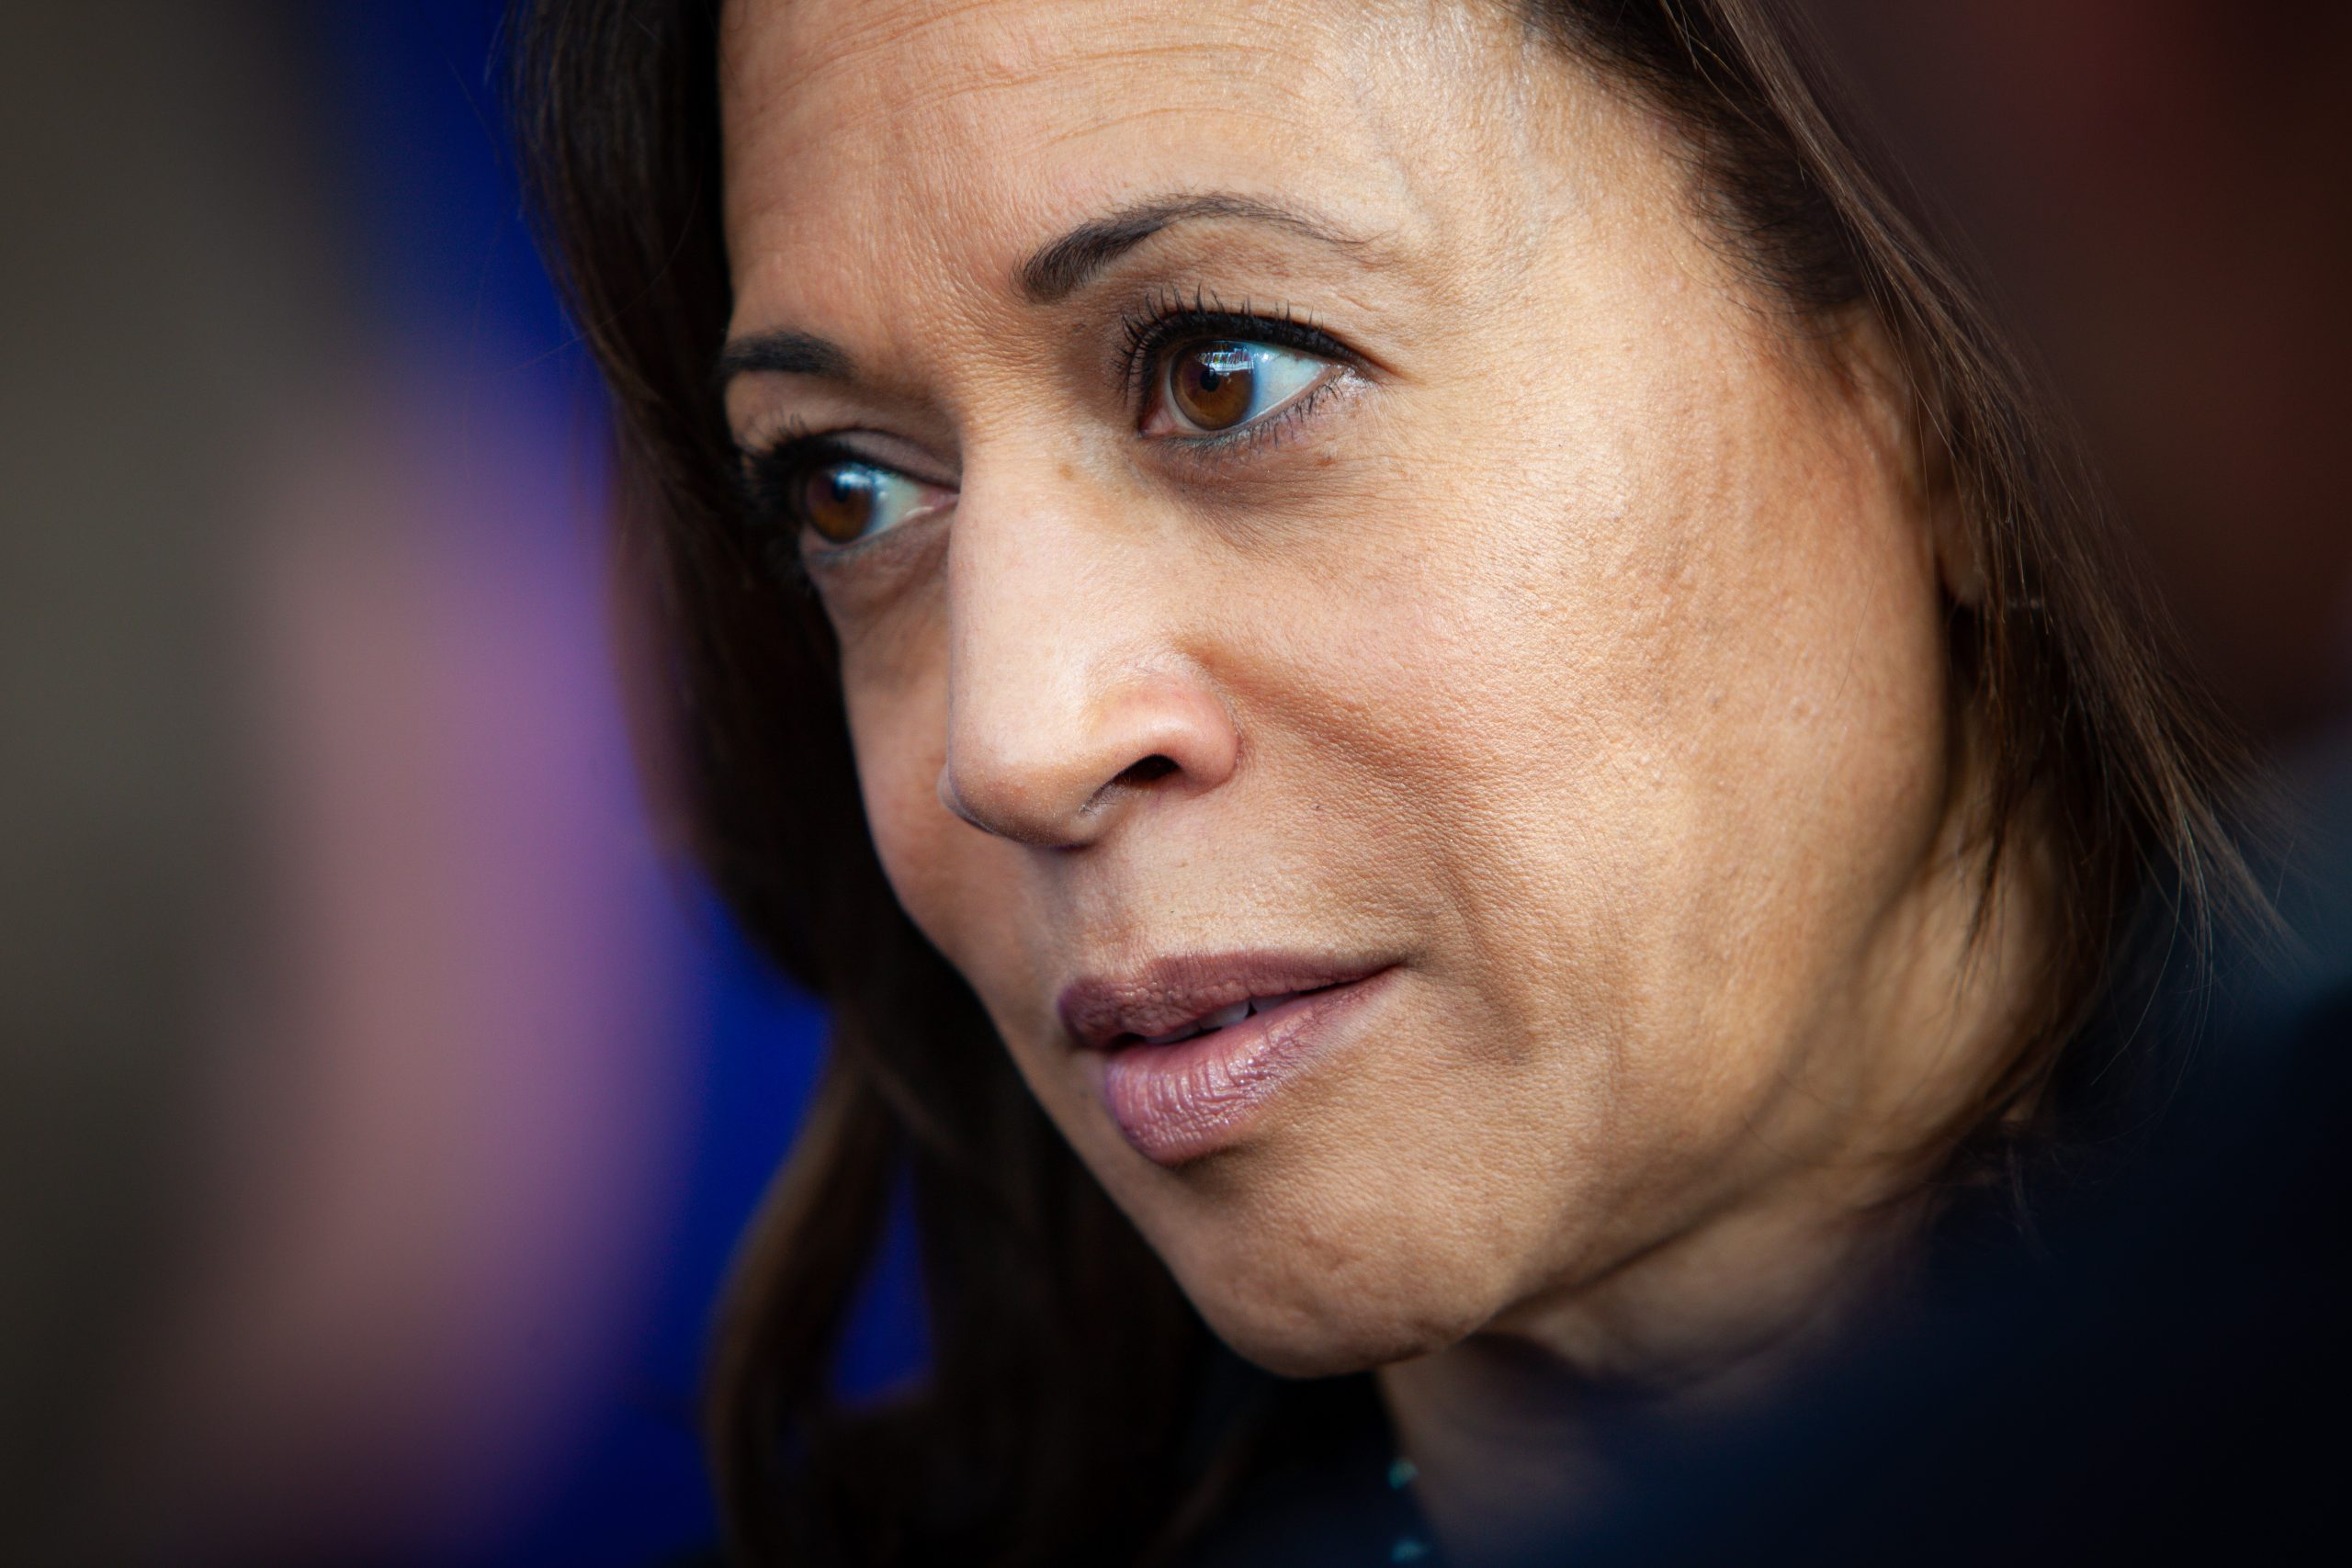 April 24, 2019: Democratic 2020 U.S. presidential candidate Kamala Harris campaigns in New Hampshire.